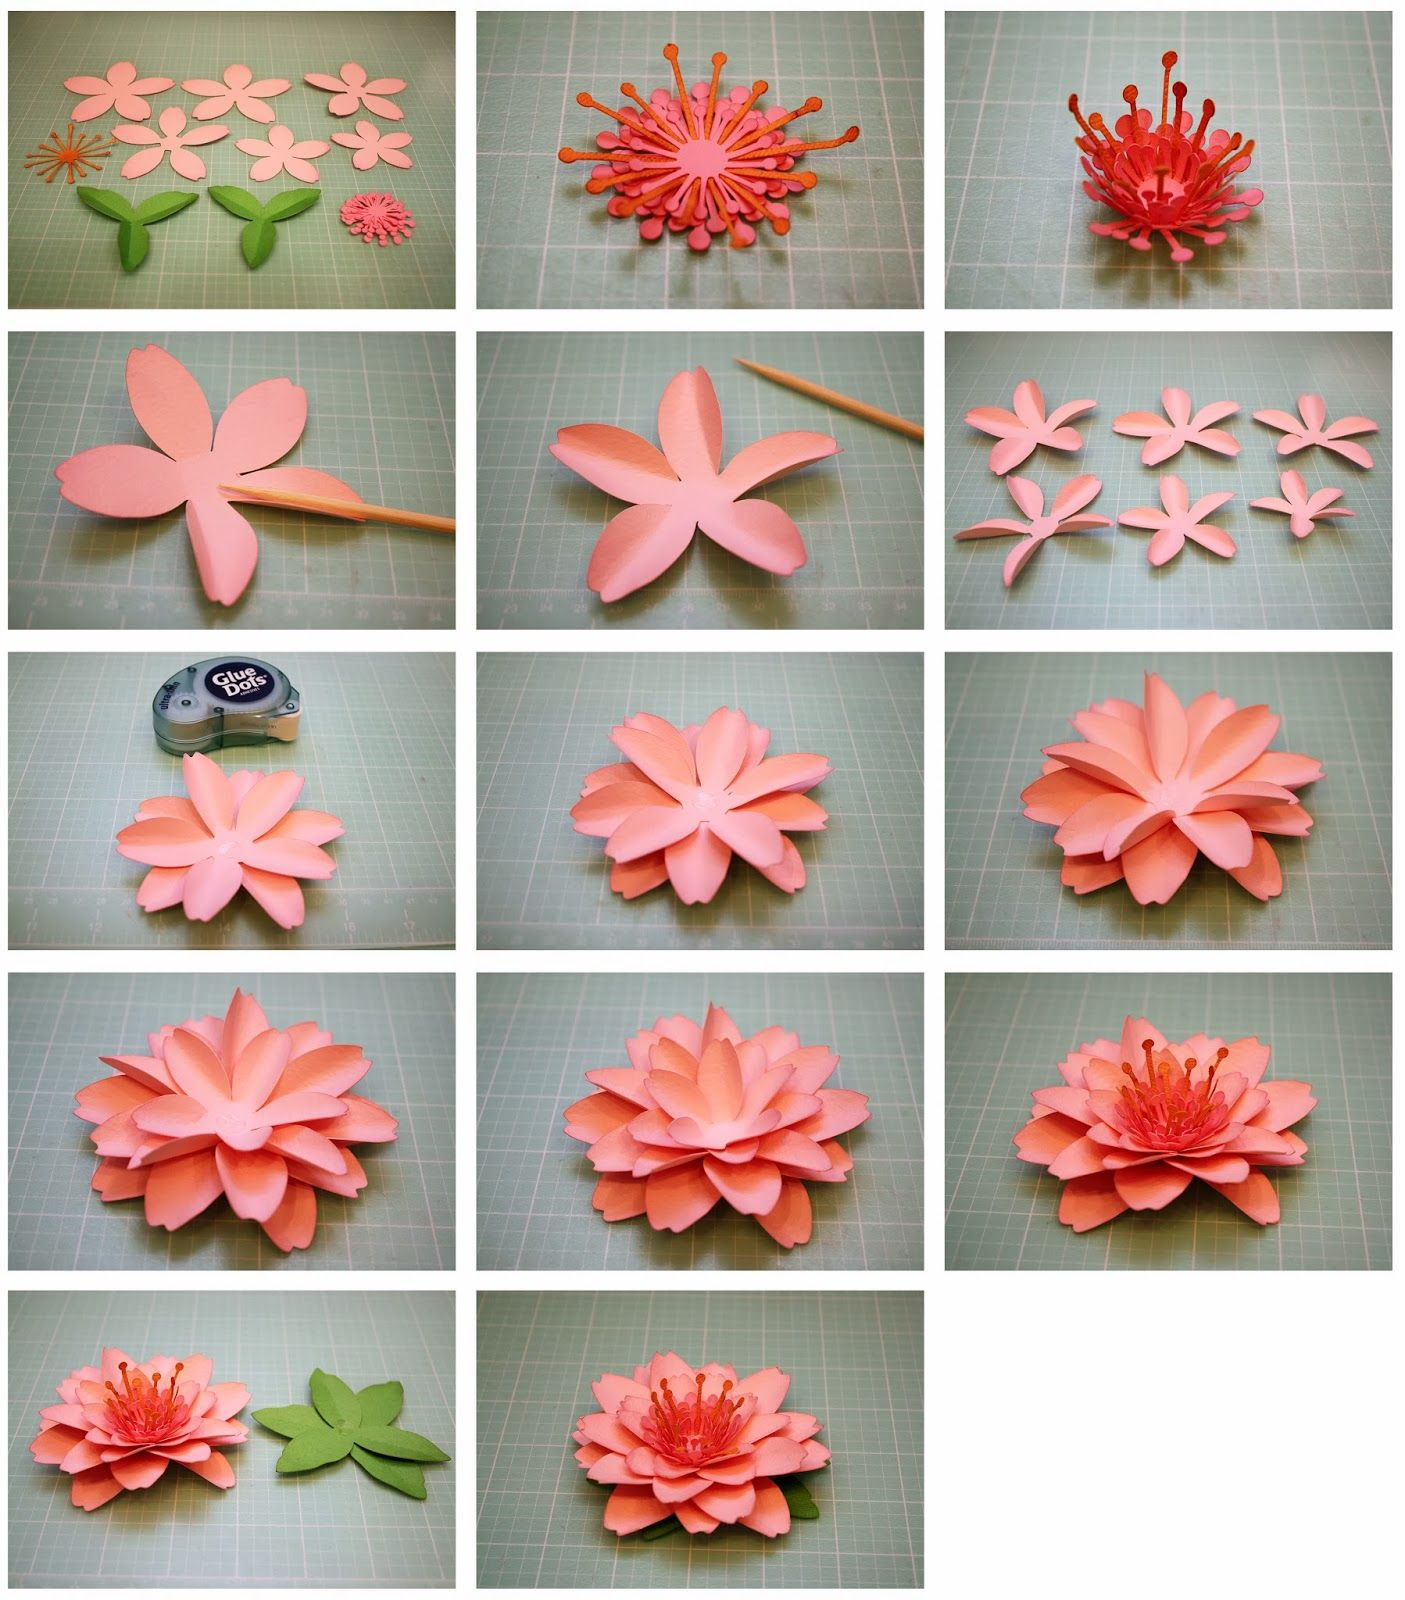 How To Make Handmade Flowers From Paper Bits Of Paper Daffodil And Cherry Blossom 3d Paper